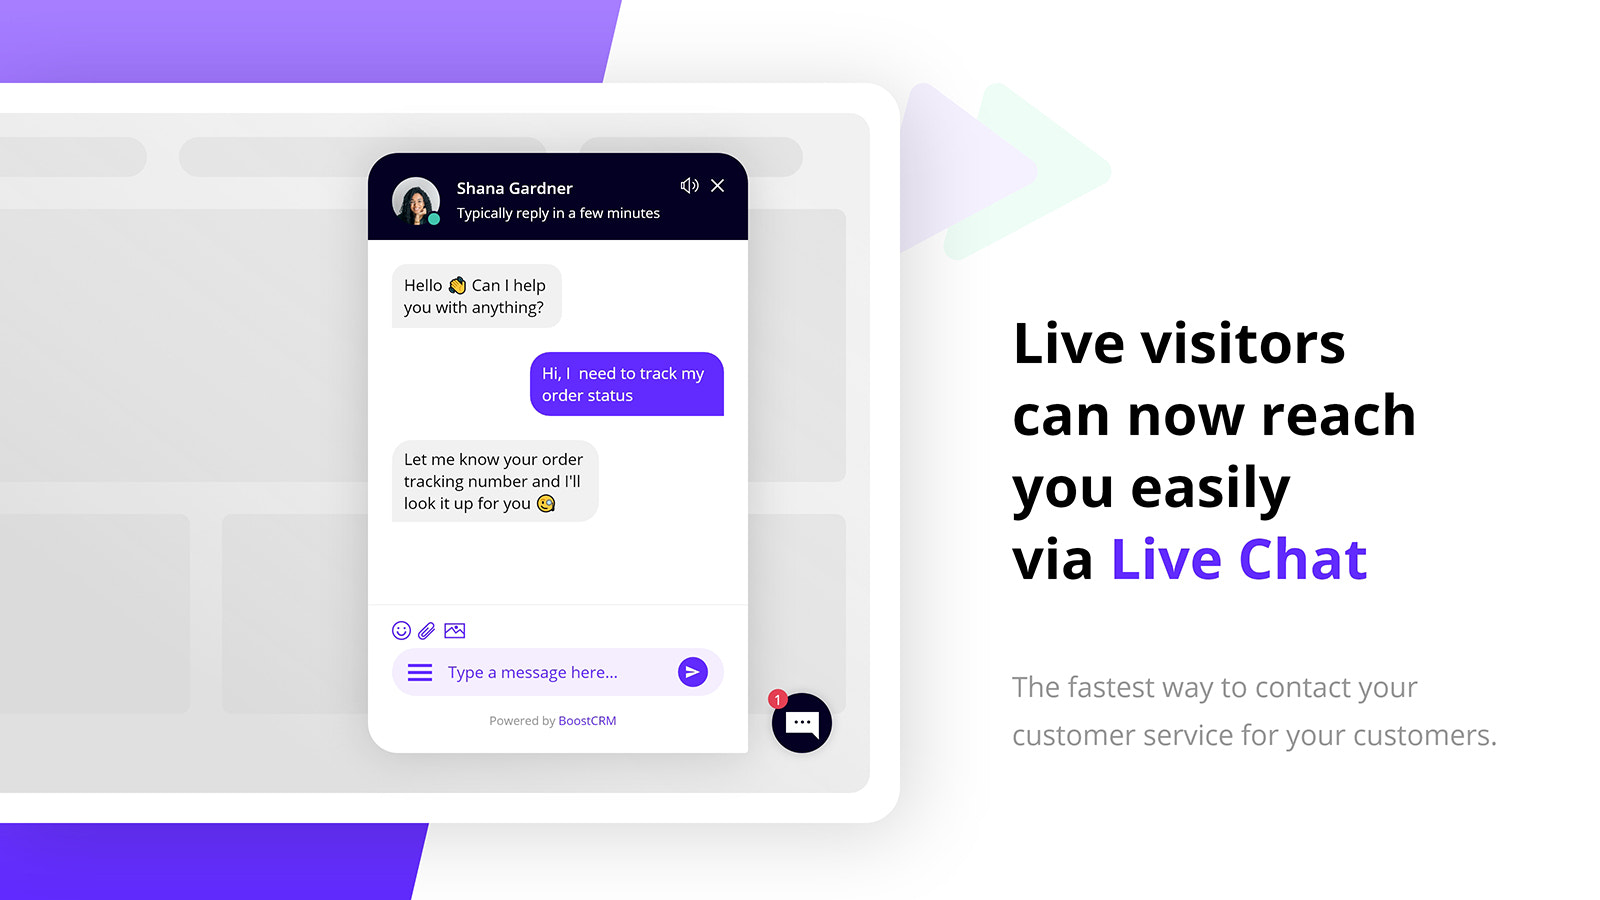 Live visitors can now reach you easily via live chat